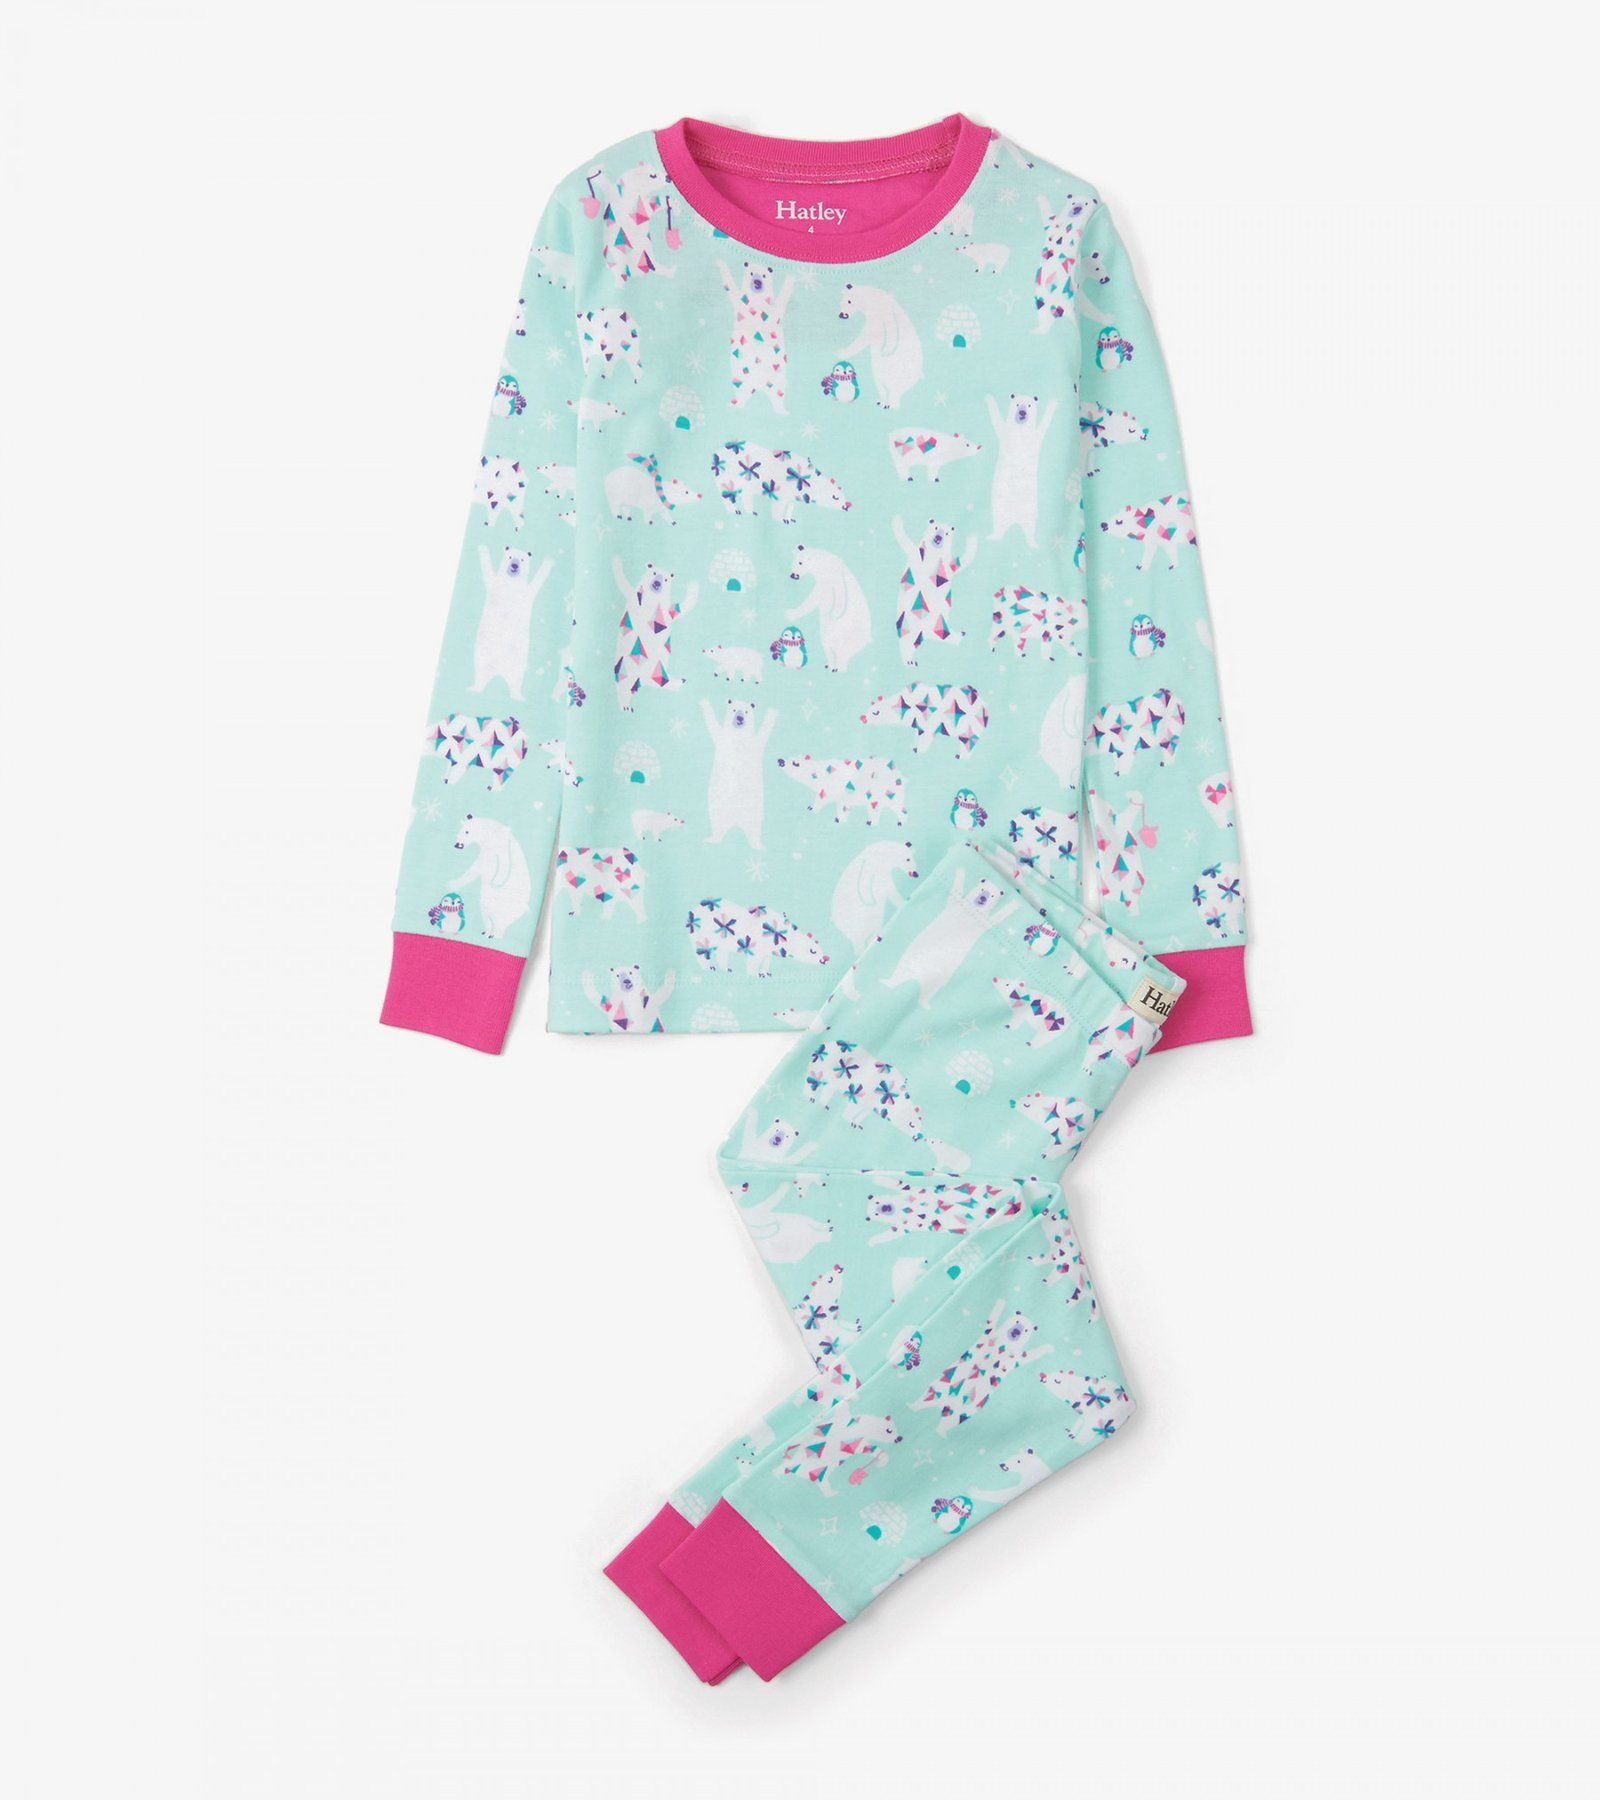 ab82a642d355 Arctic Party Organic Cotton Pajama Set  girlspajamas